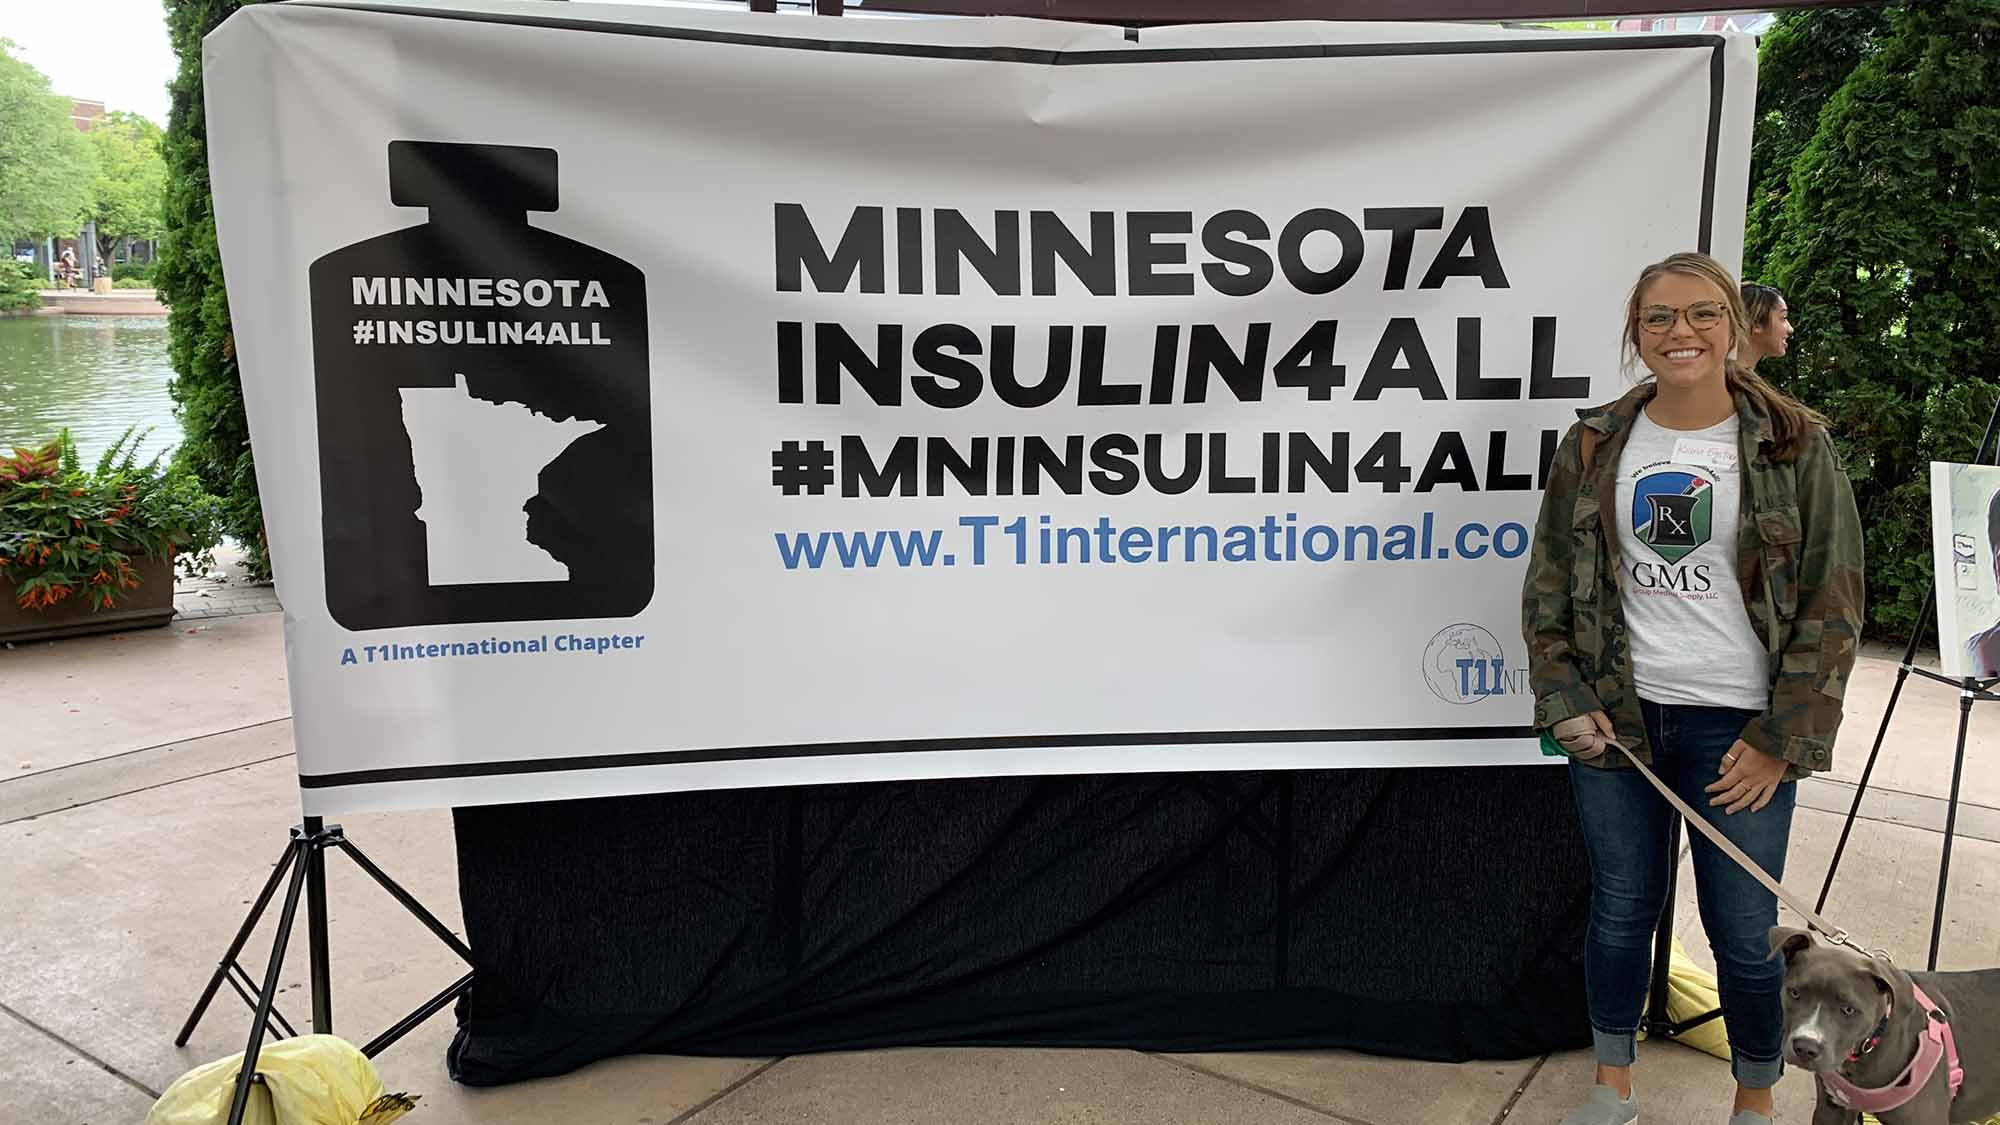 Kiana at the Minnesota Insulin 4all event